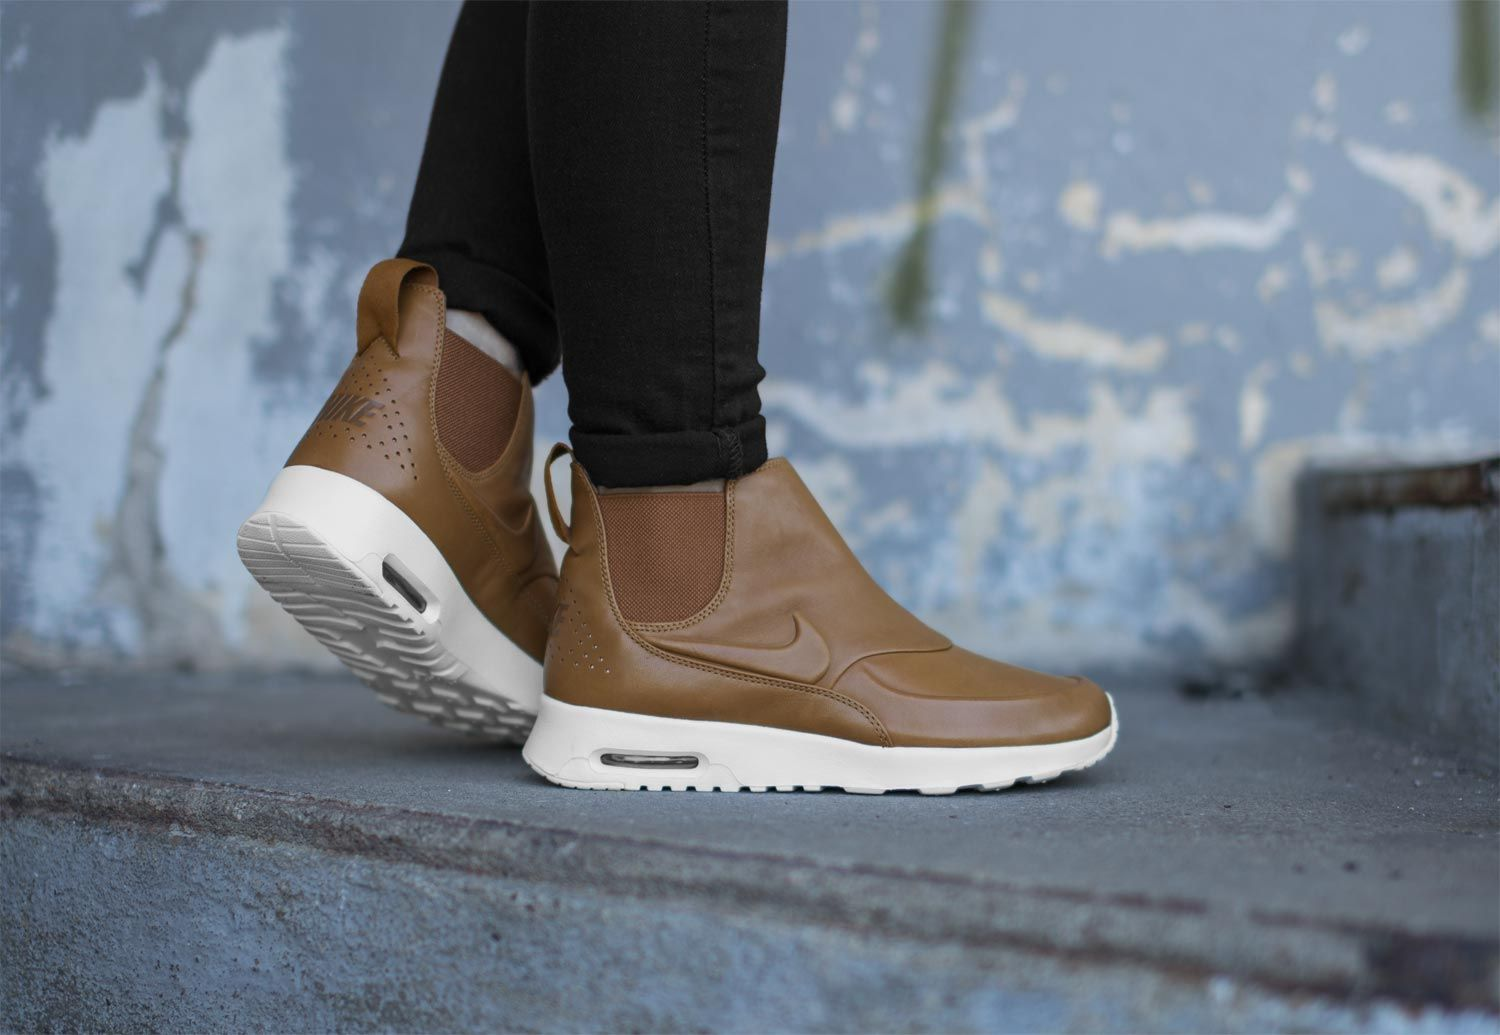 Shoes Mid Max Thea Air Kicks4chicz Nike Pinterest W SRqzPfOn